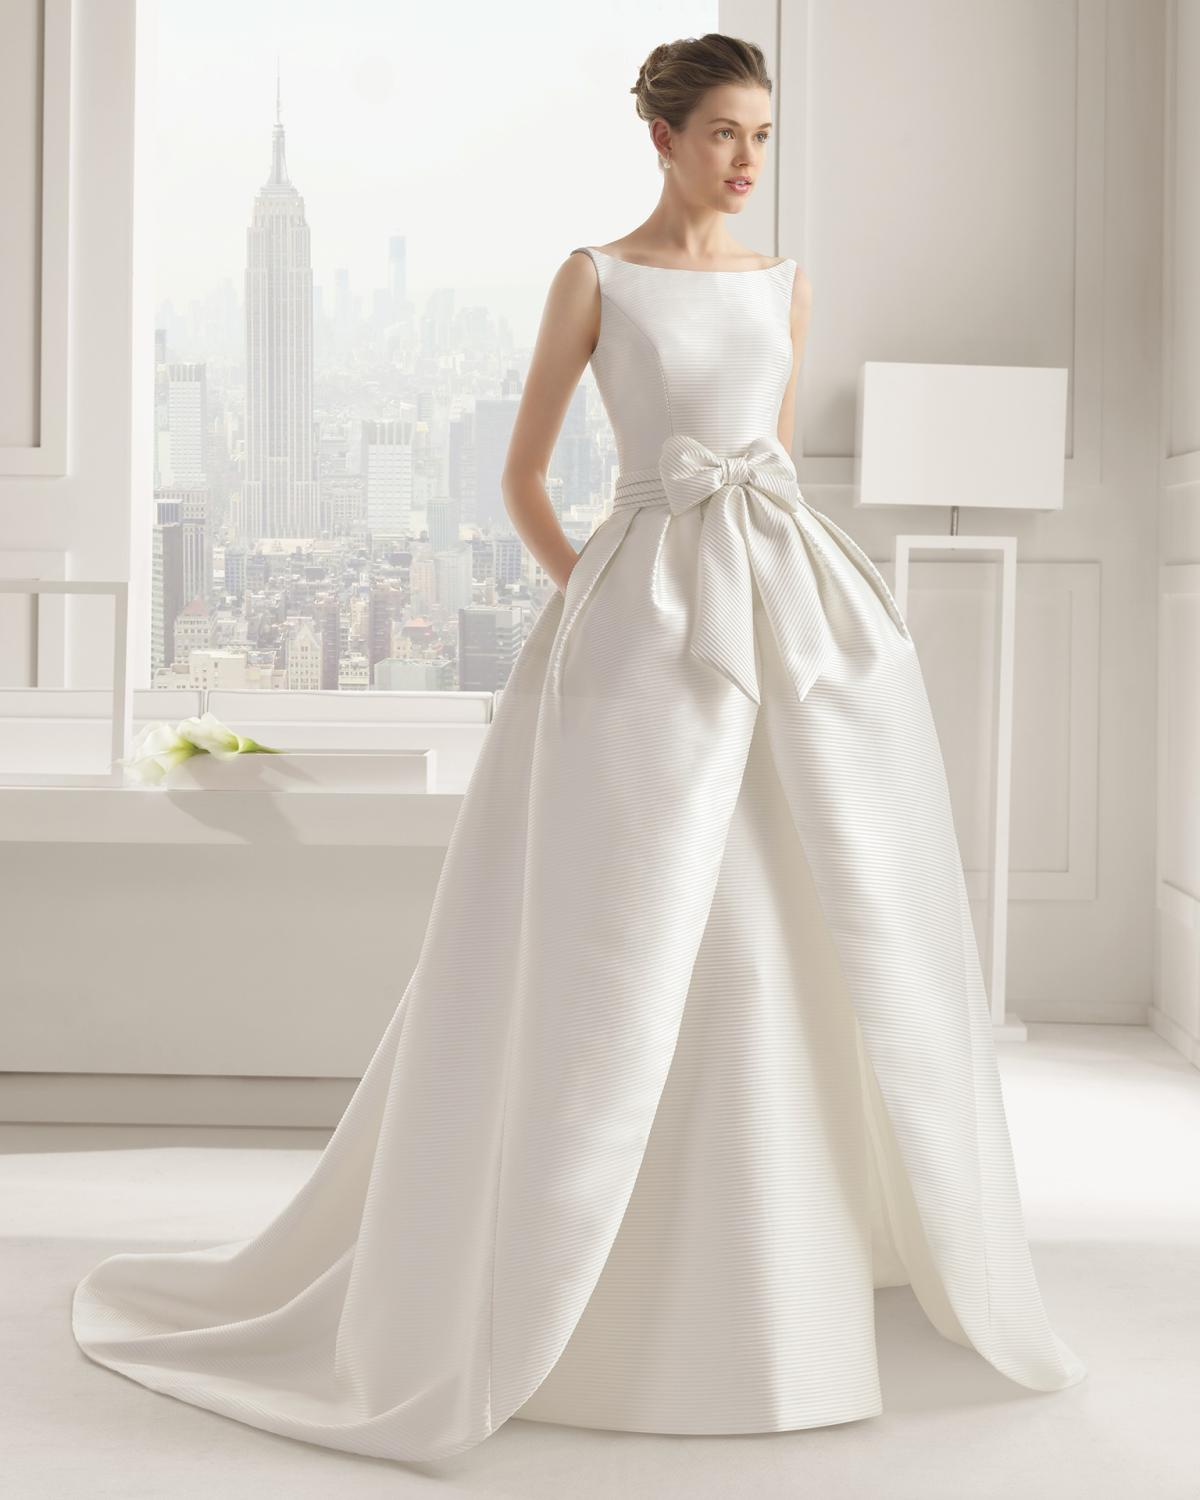 Wedding Gowns For Small Bust: Dopinane Spódnice I Treny